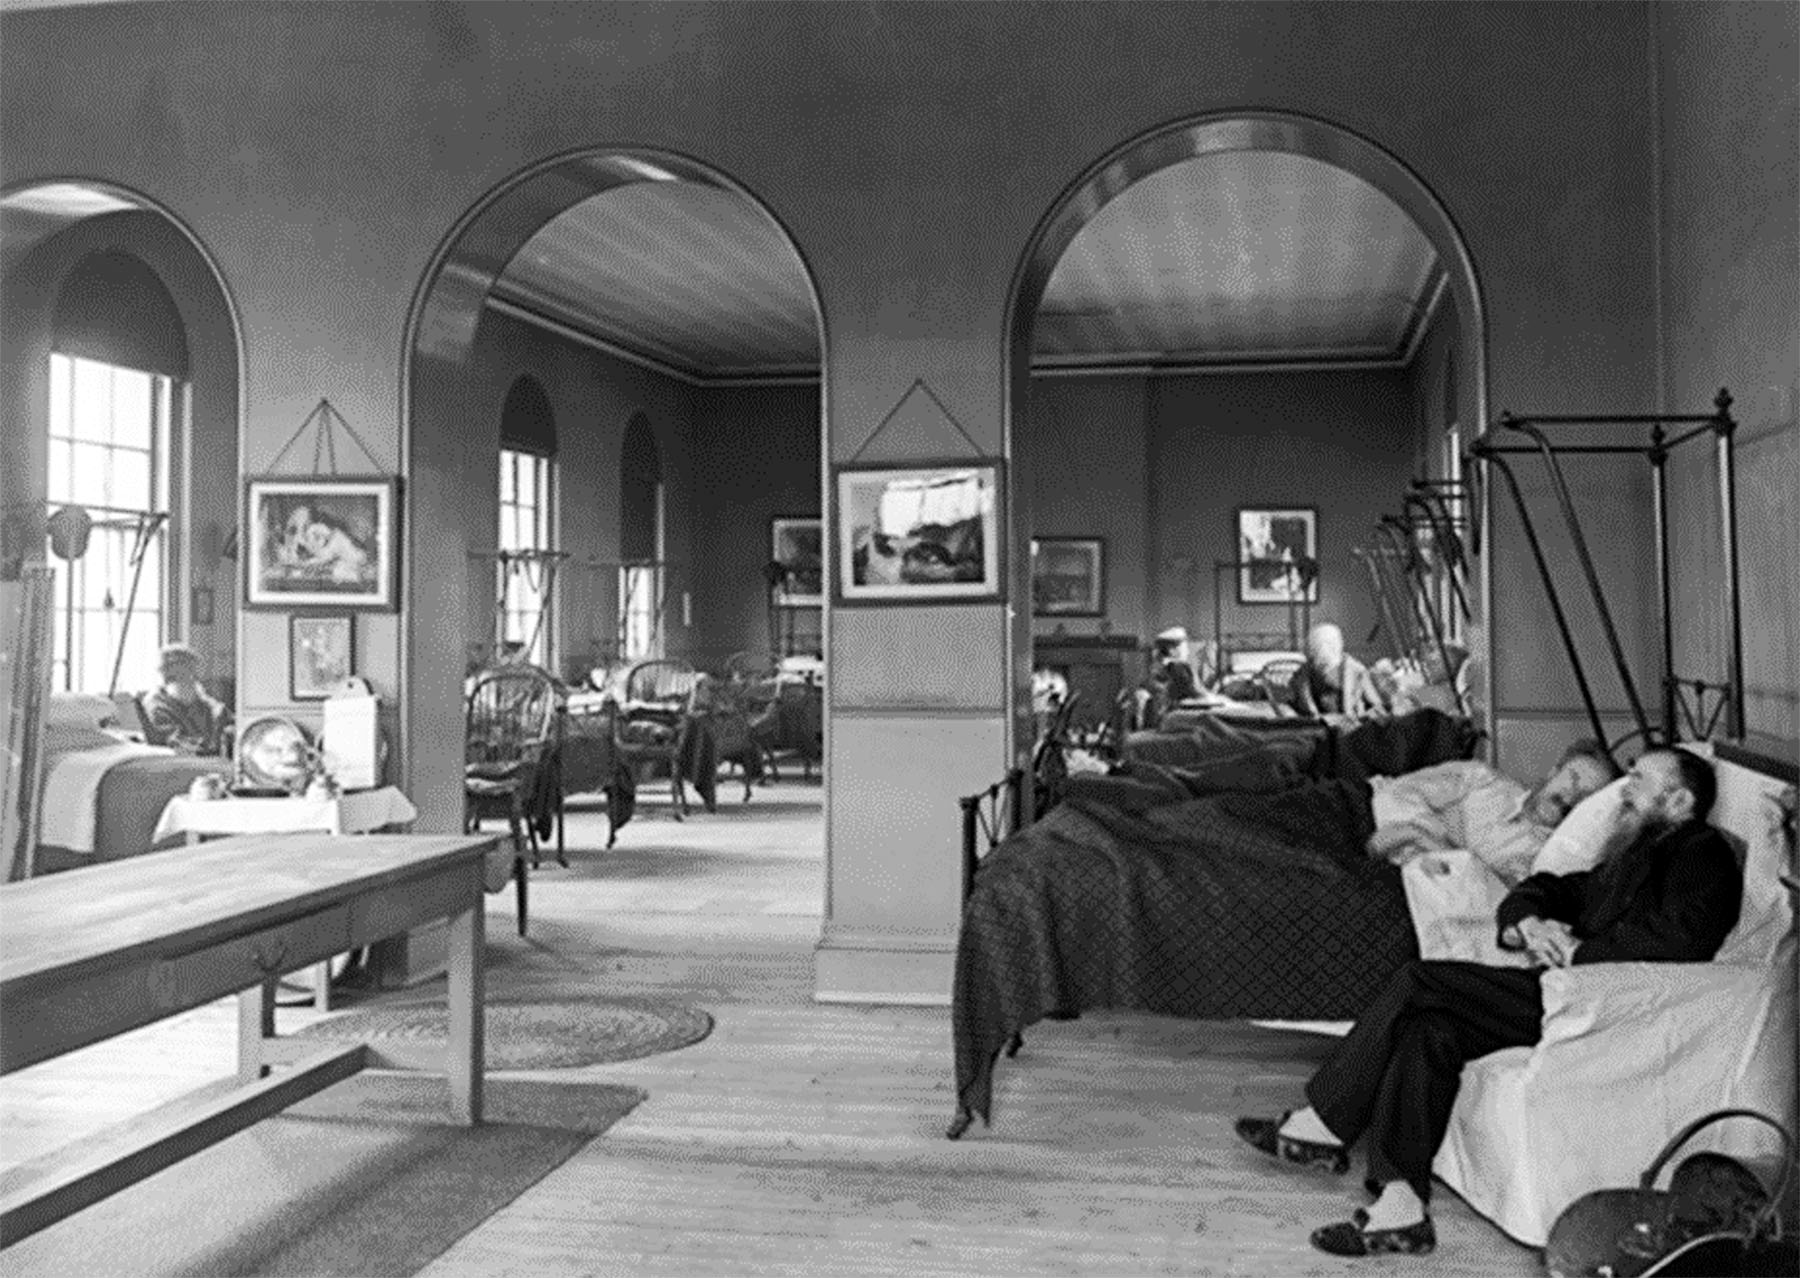 This view of the Infirmary's interior was taken in the early 20th century.